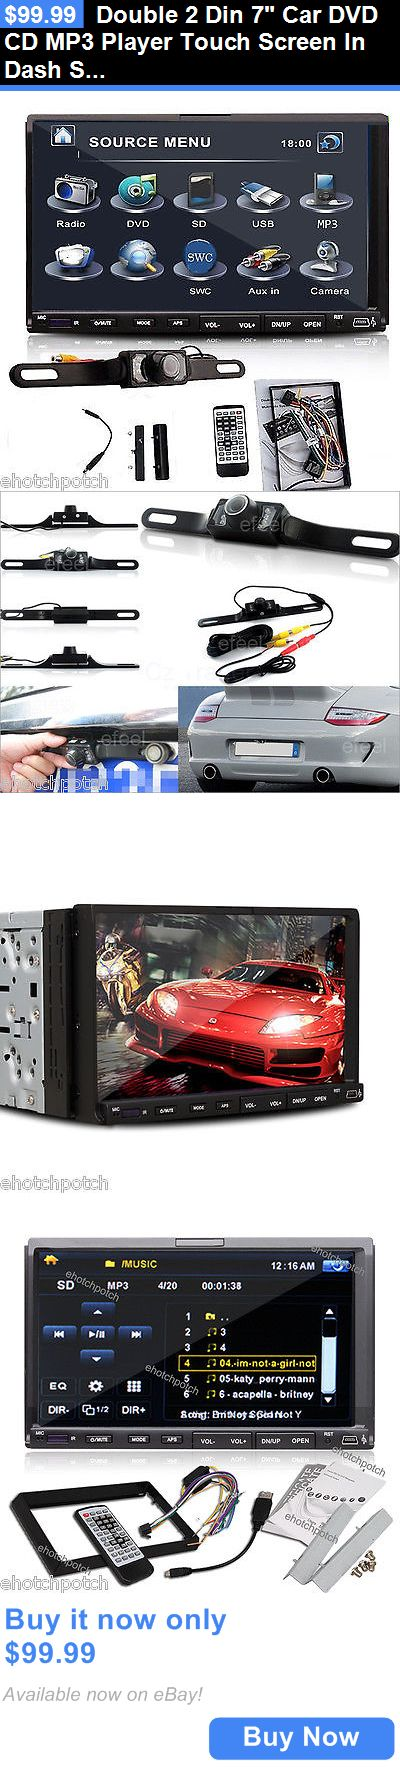 Vehicle Electronics And GPS: Double 2 Din 7 Car Dvd Cd Mp3 Player Touch Screen In Dash Stereo Radio+Camera BUY IT NOW ONLY: $99.99